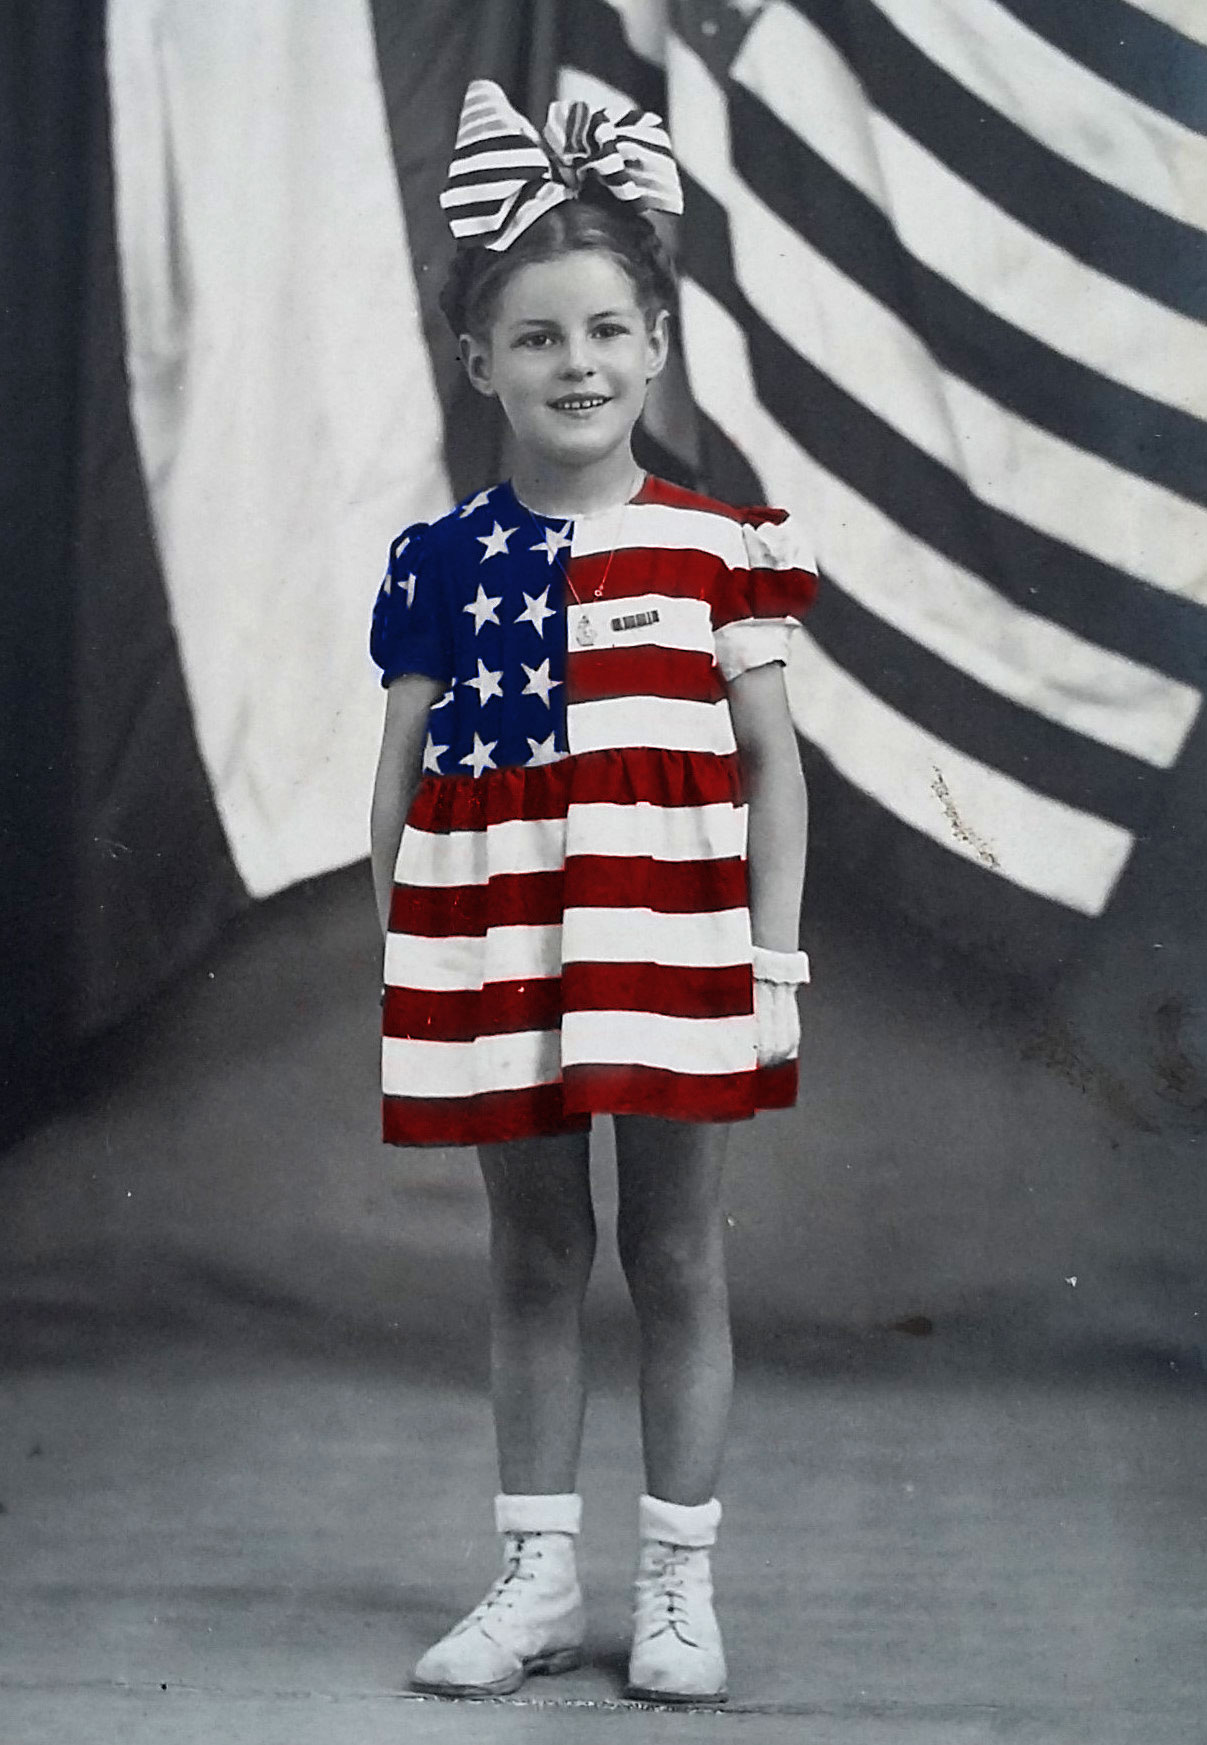 Danièle Patrix wearing her iconic American flag dress